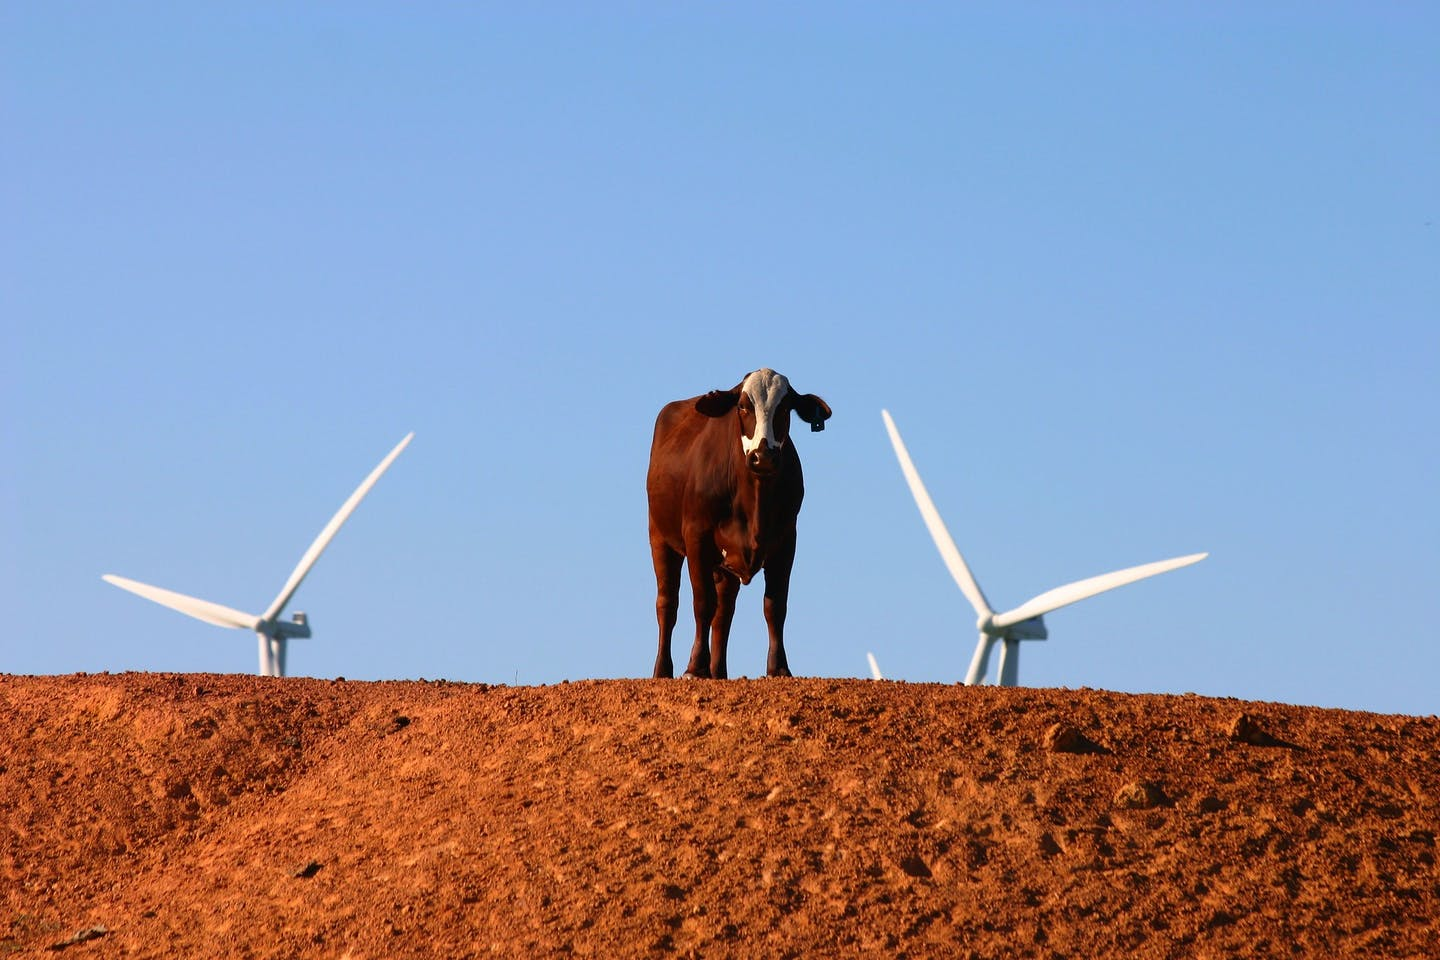 Cow between two wind turbines